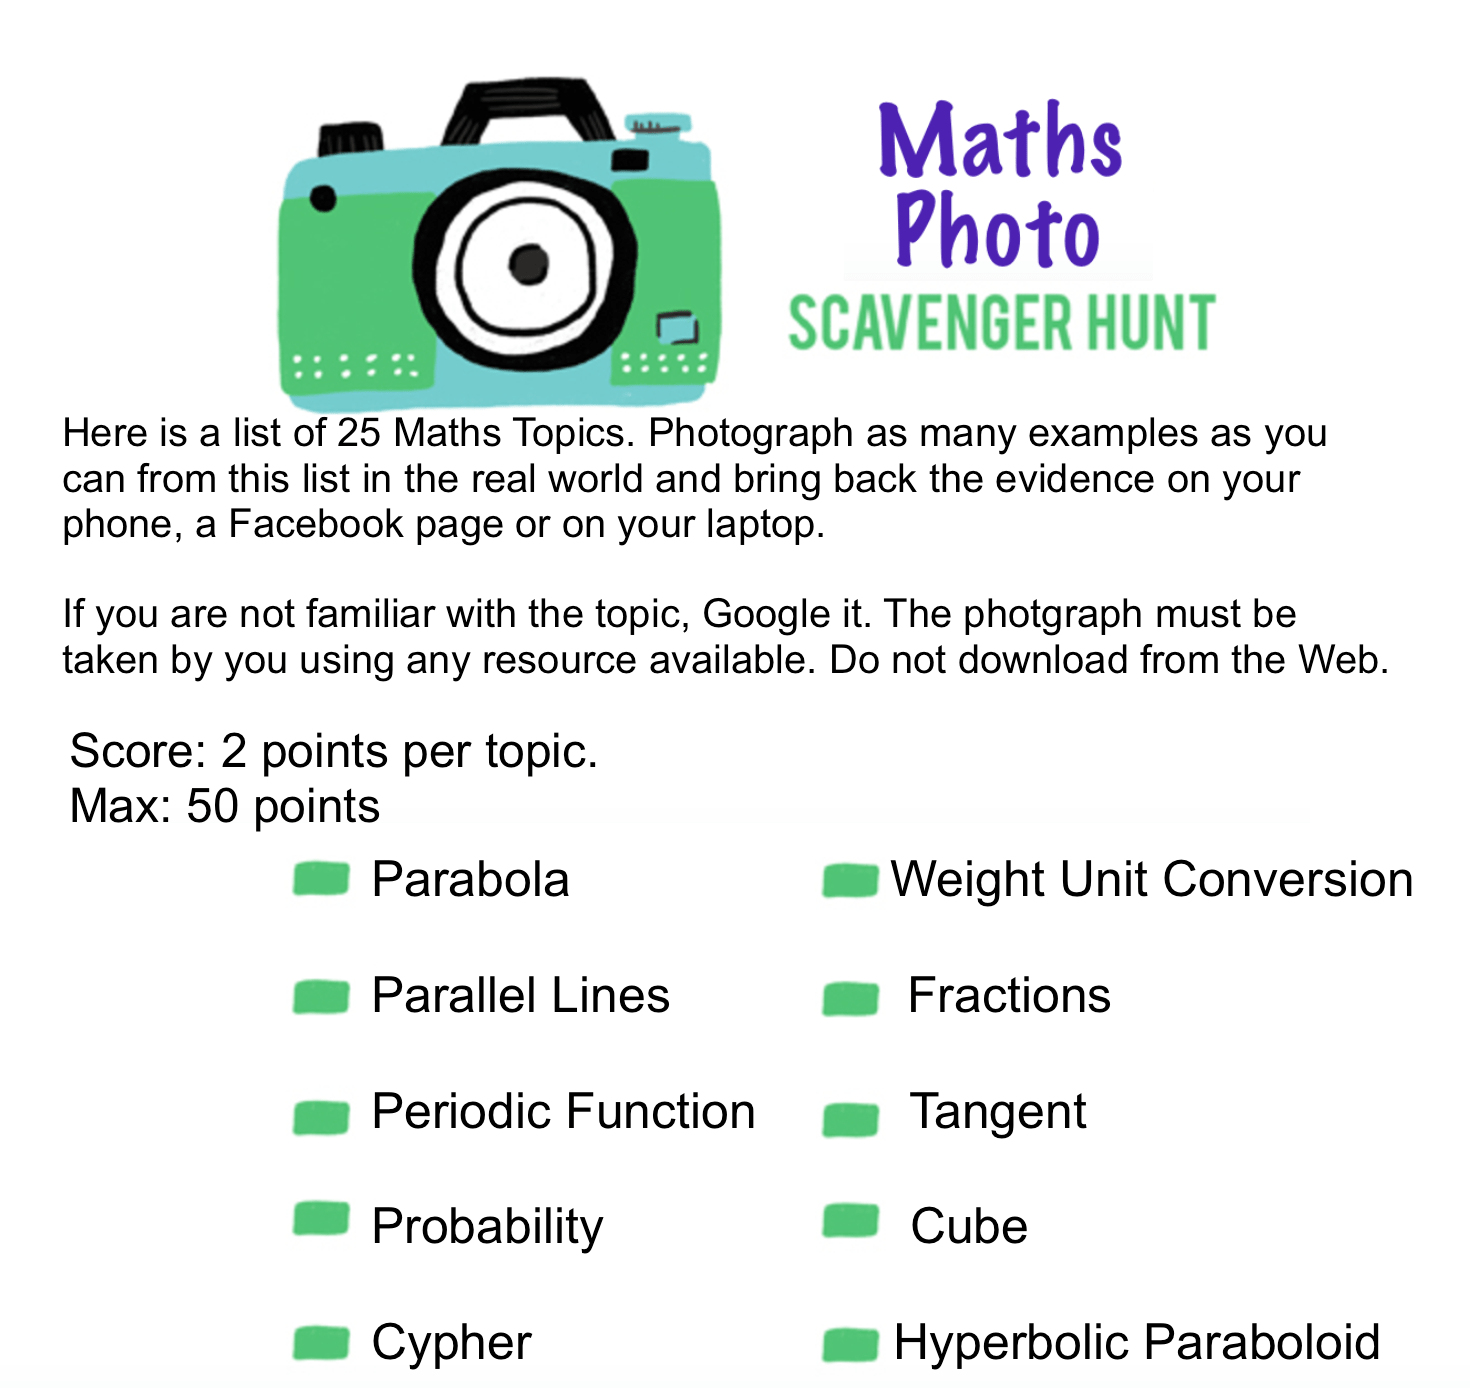 7b Middle School Maths Photo Scavenger Hunt